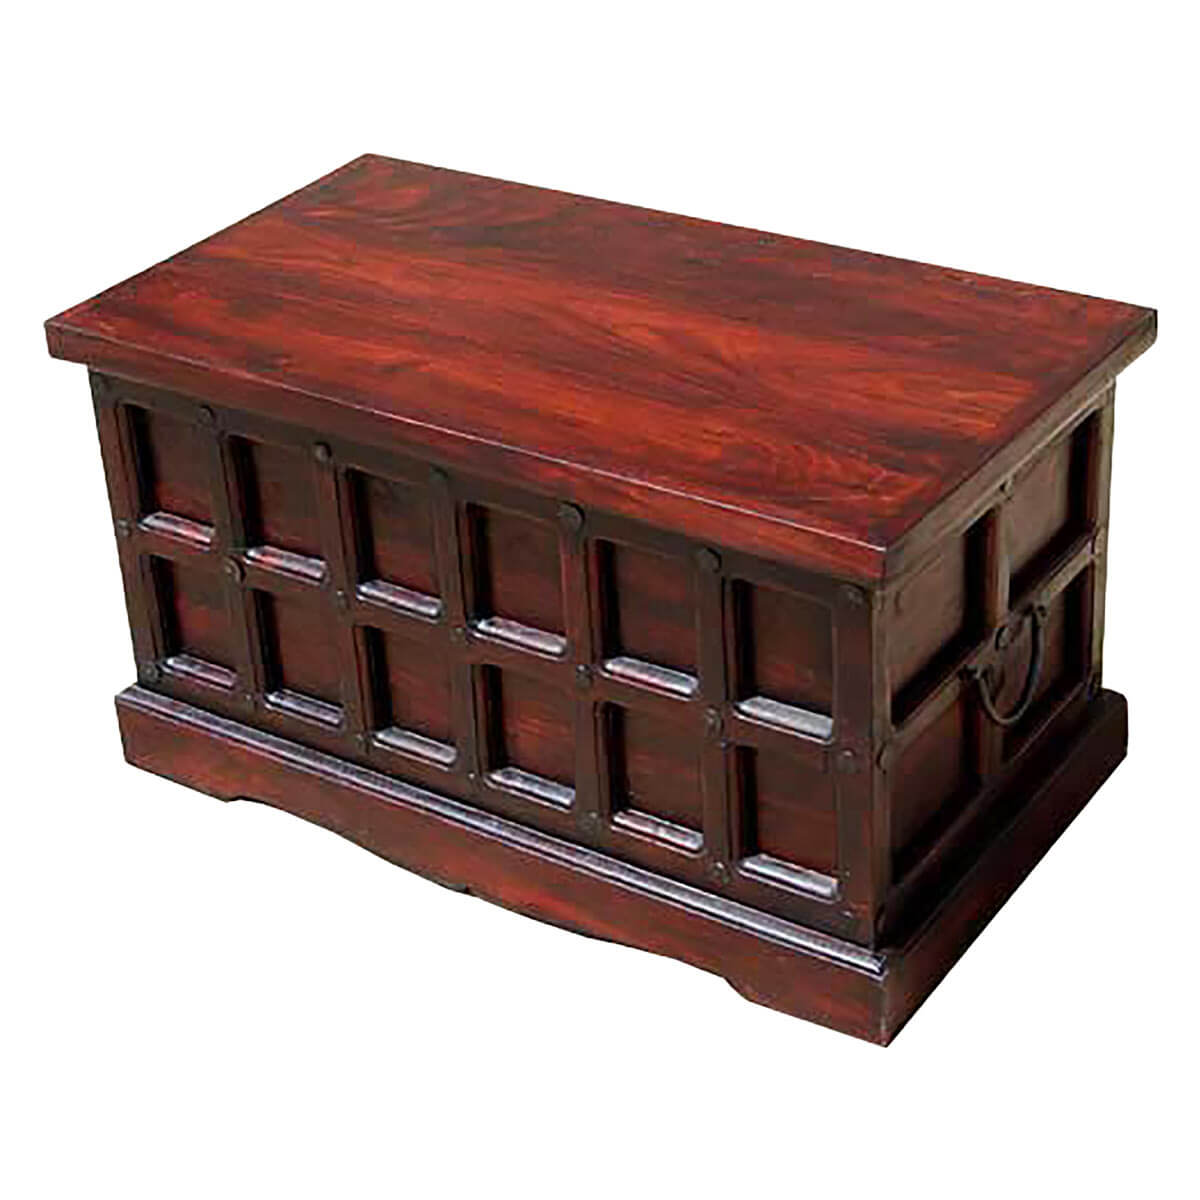 Beaufort Solid Wood Storage Chest Trunk Box Coffee Table